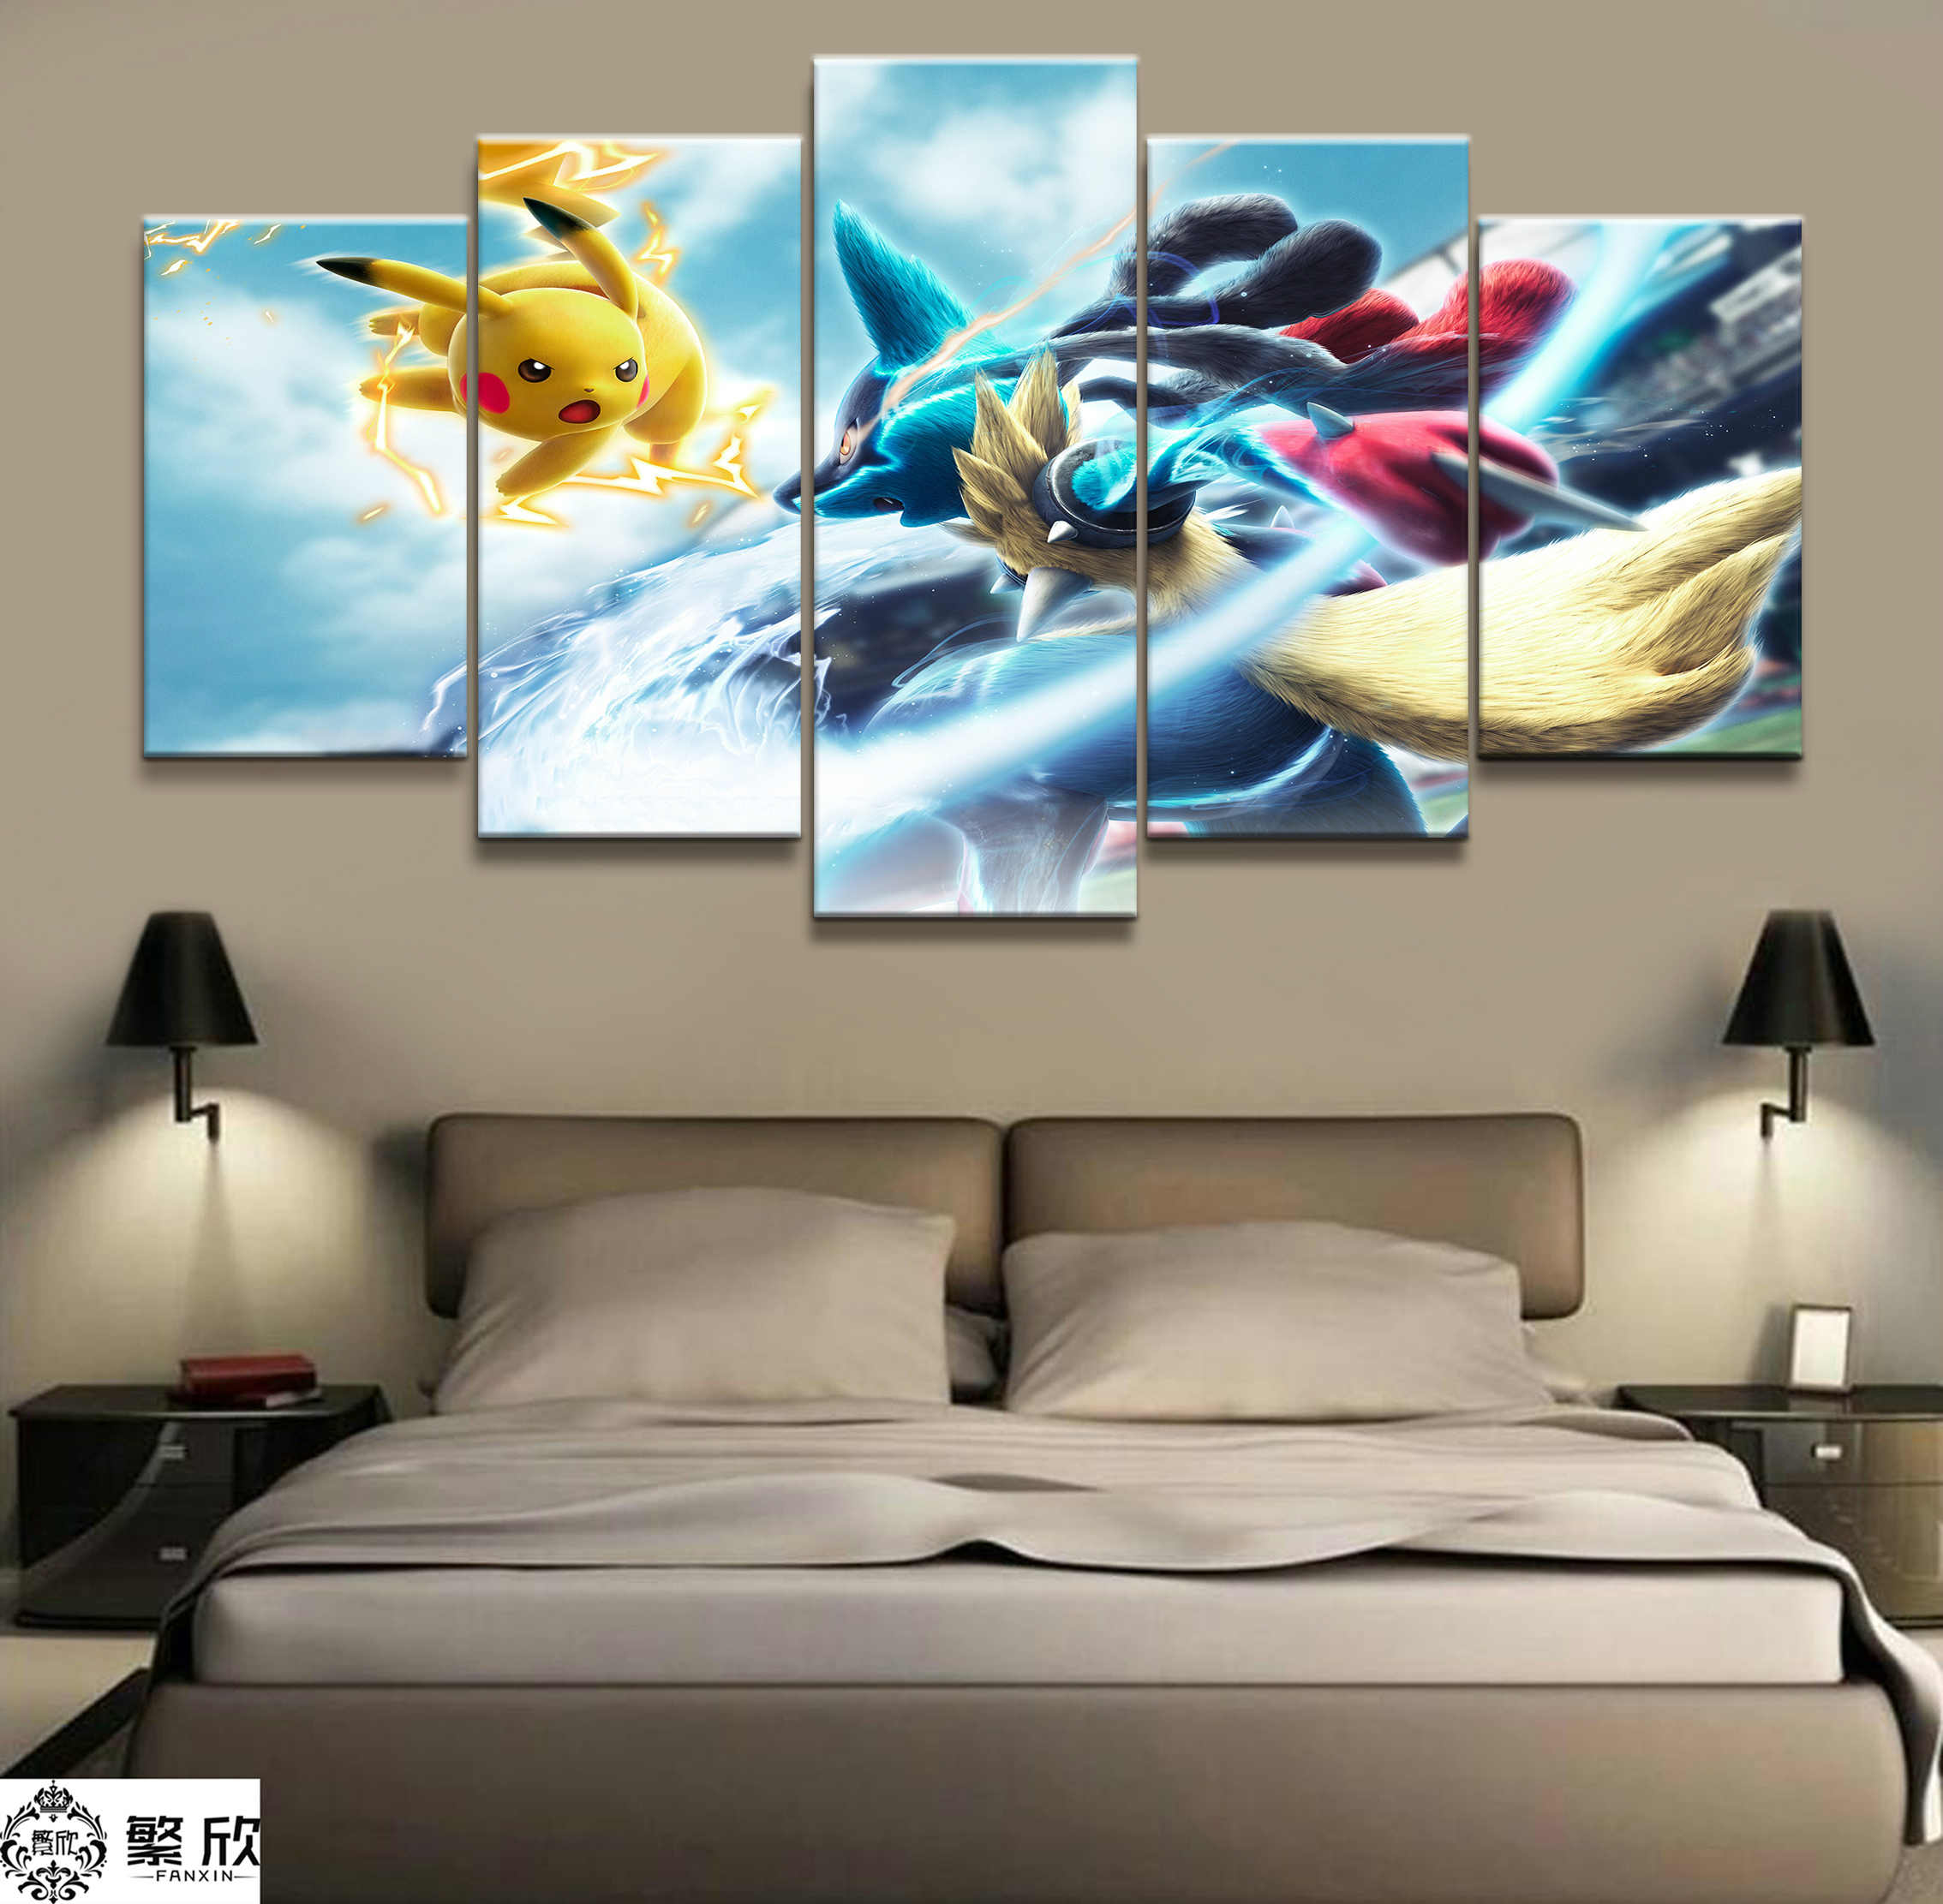 36ee600fe Home Decor Painting Print 5 Piece Best Stylish Classic Cartoon Pokemon Game  Poster Oil Picture Wall